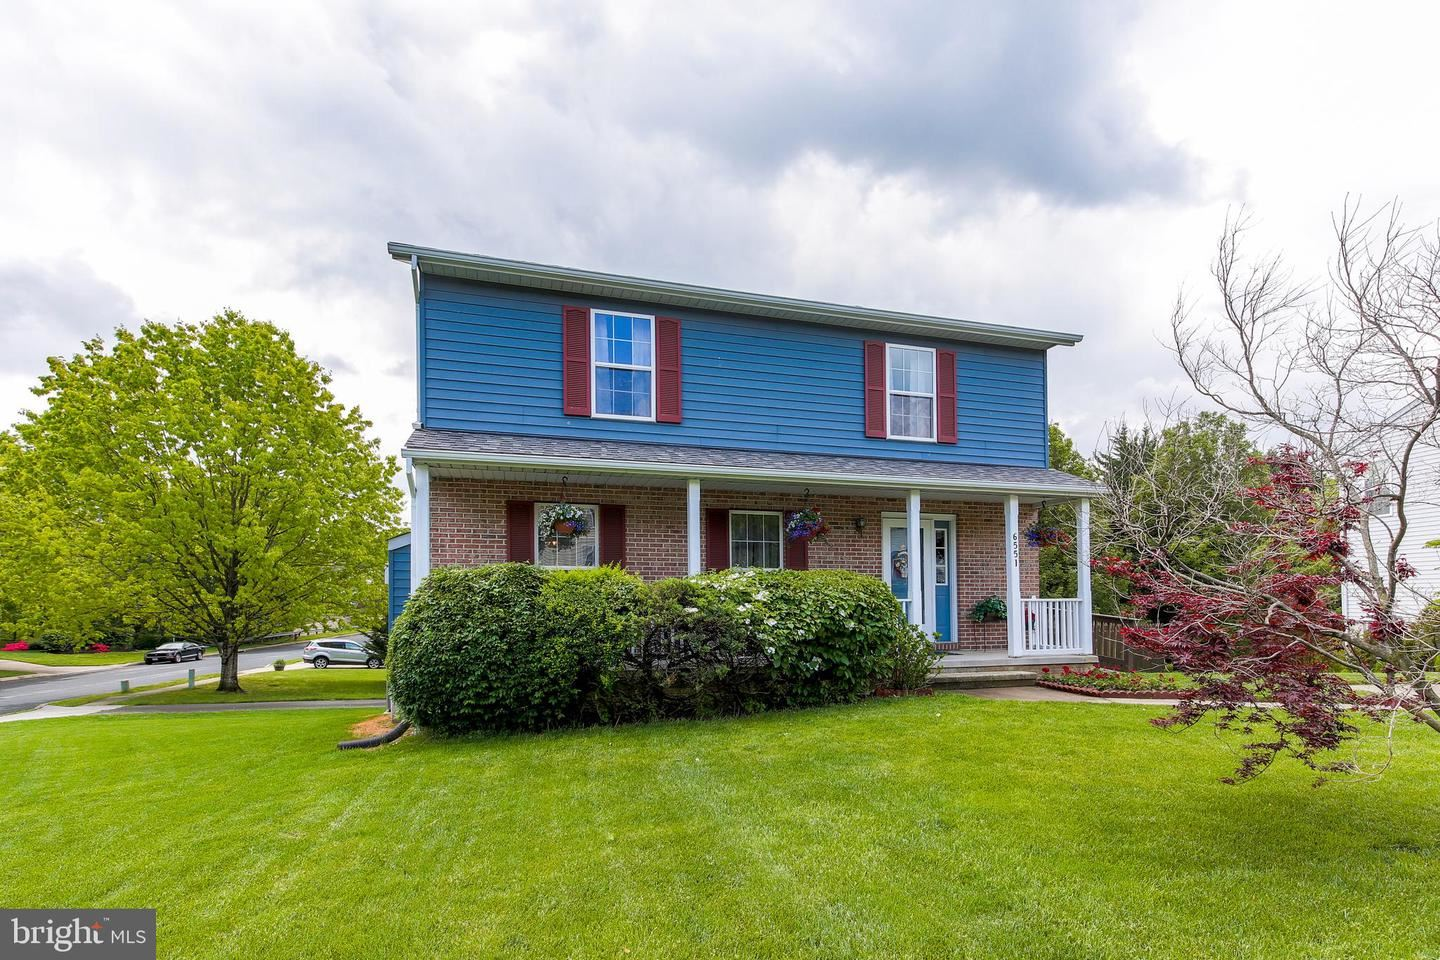 6551 ABRAHAM CT, Eldersburg, MD 21784 - MLS#: MDCR204230